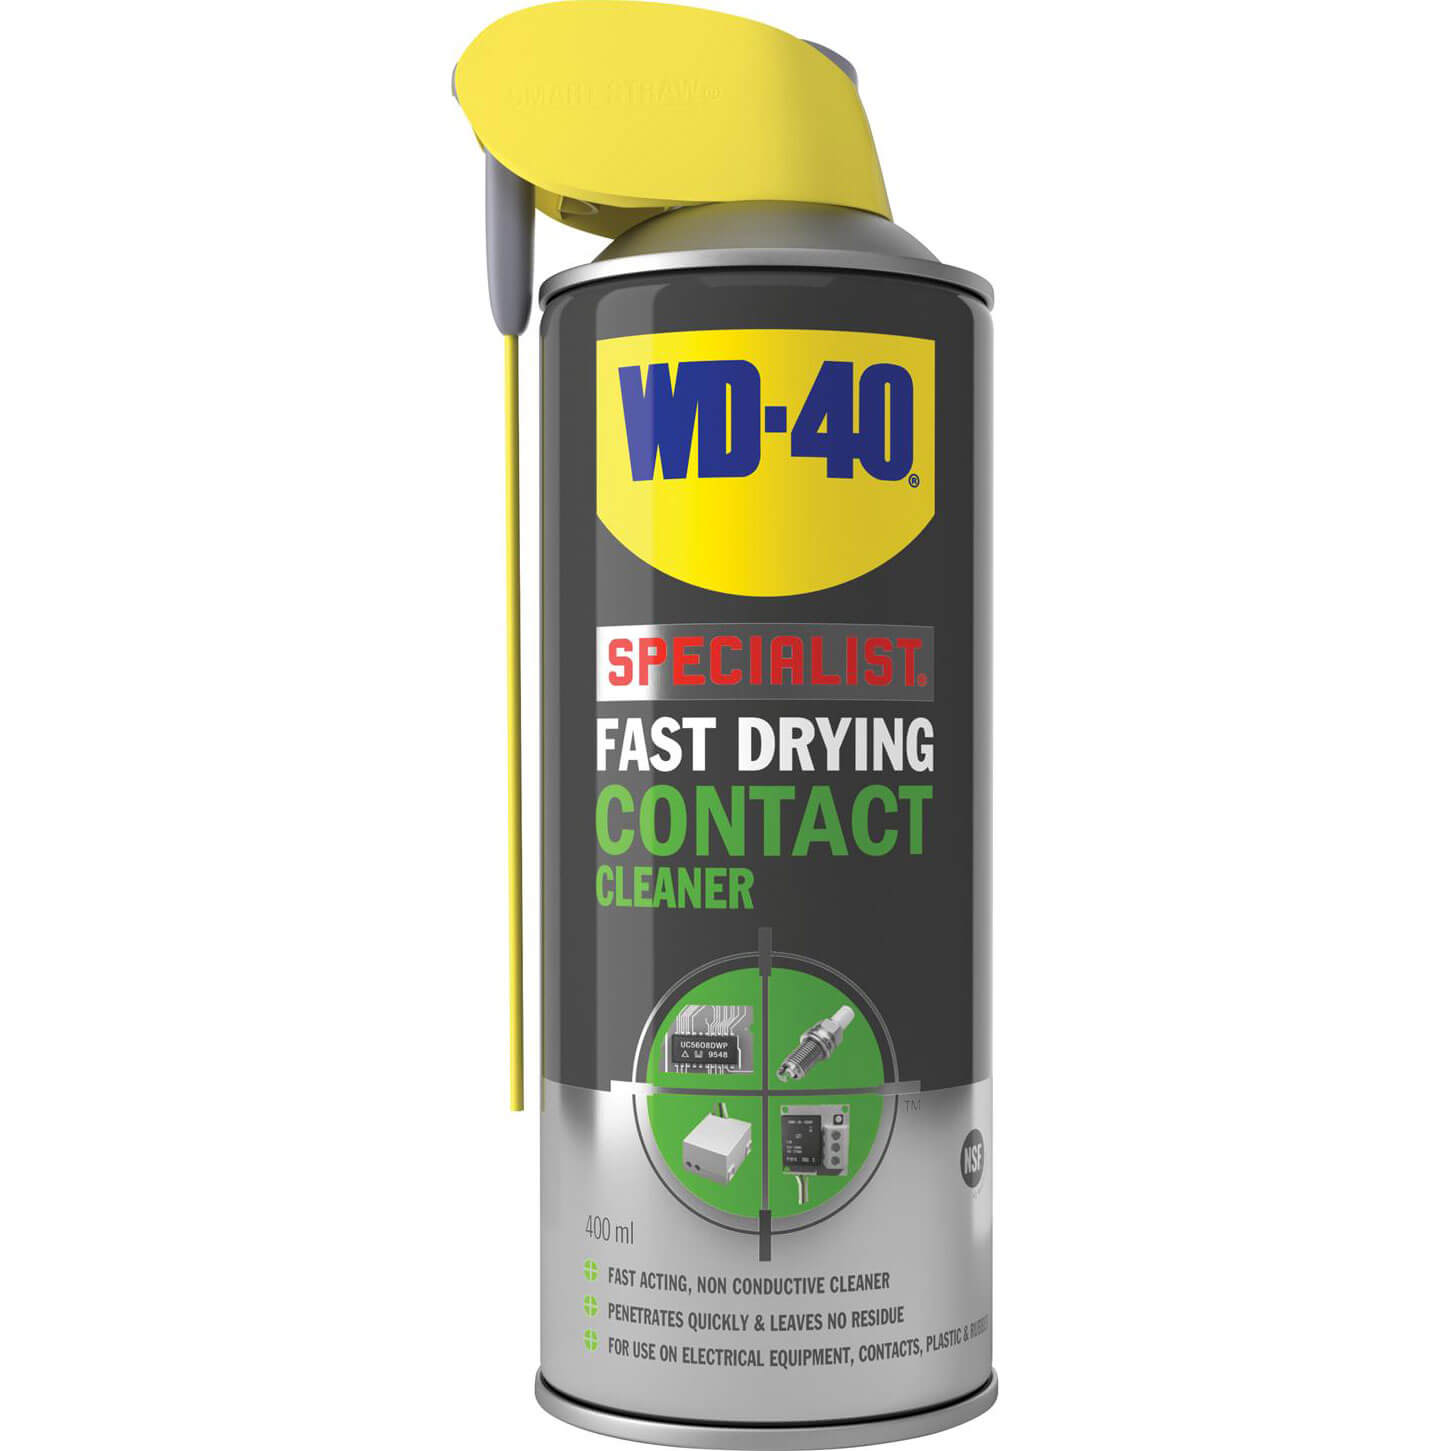 Image of WD40 Specialist Contact Cleaner Aerosol Spray 400ml